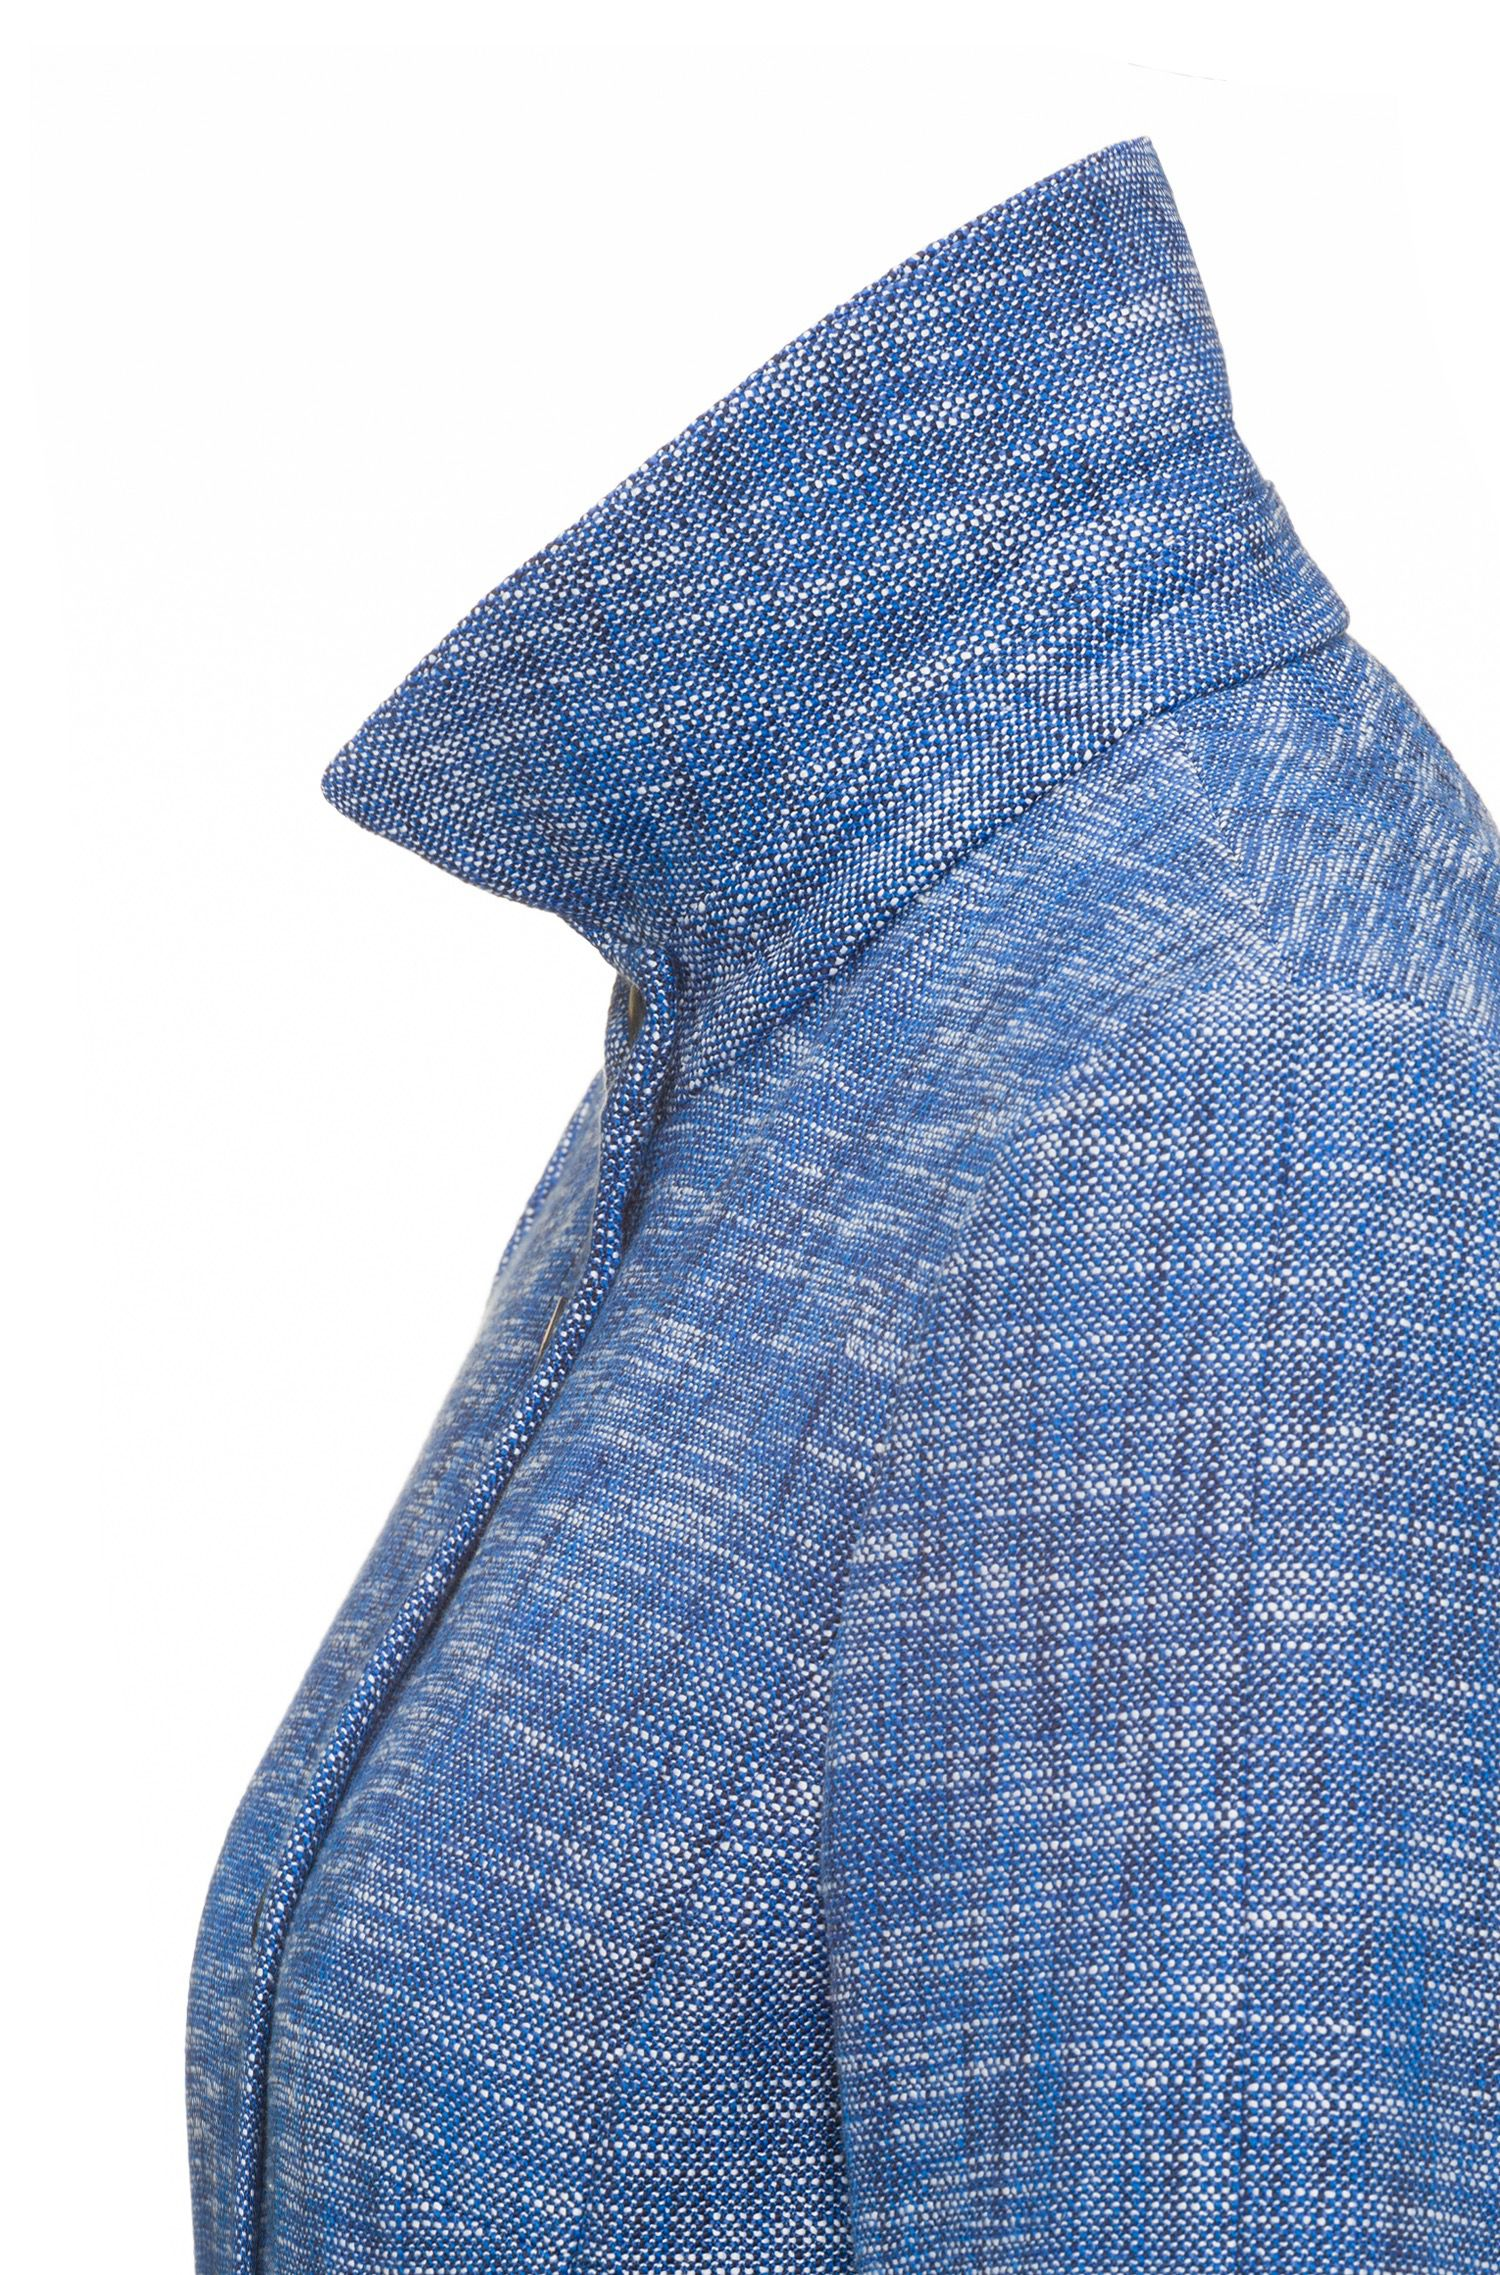 Giacca in tweed regular fit con chiusura a bottoni automatici